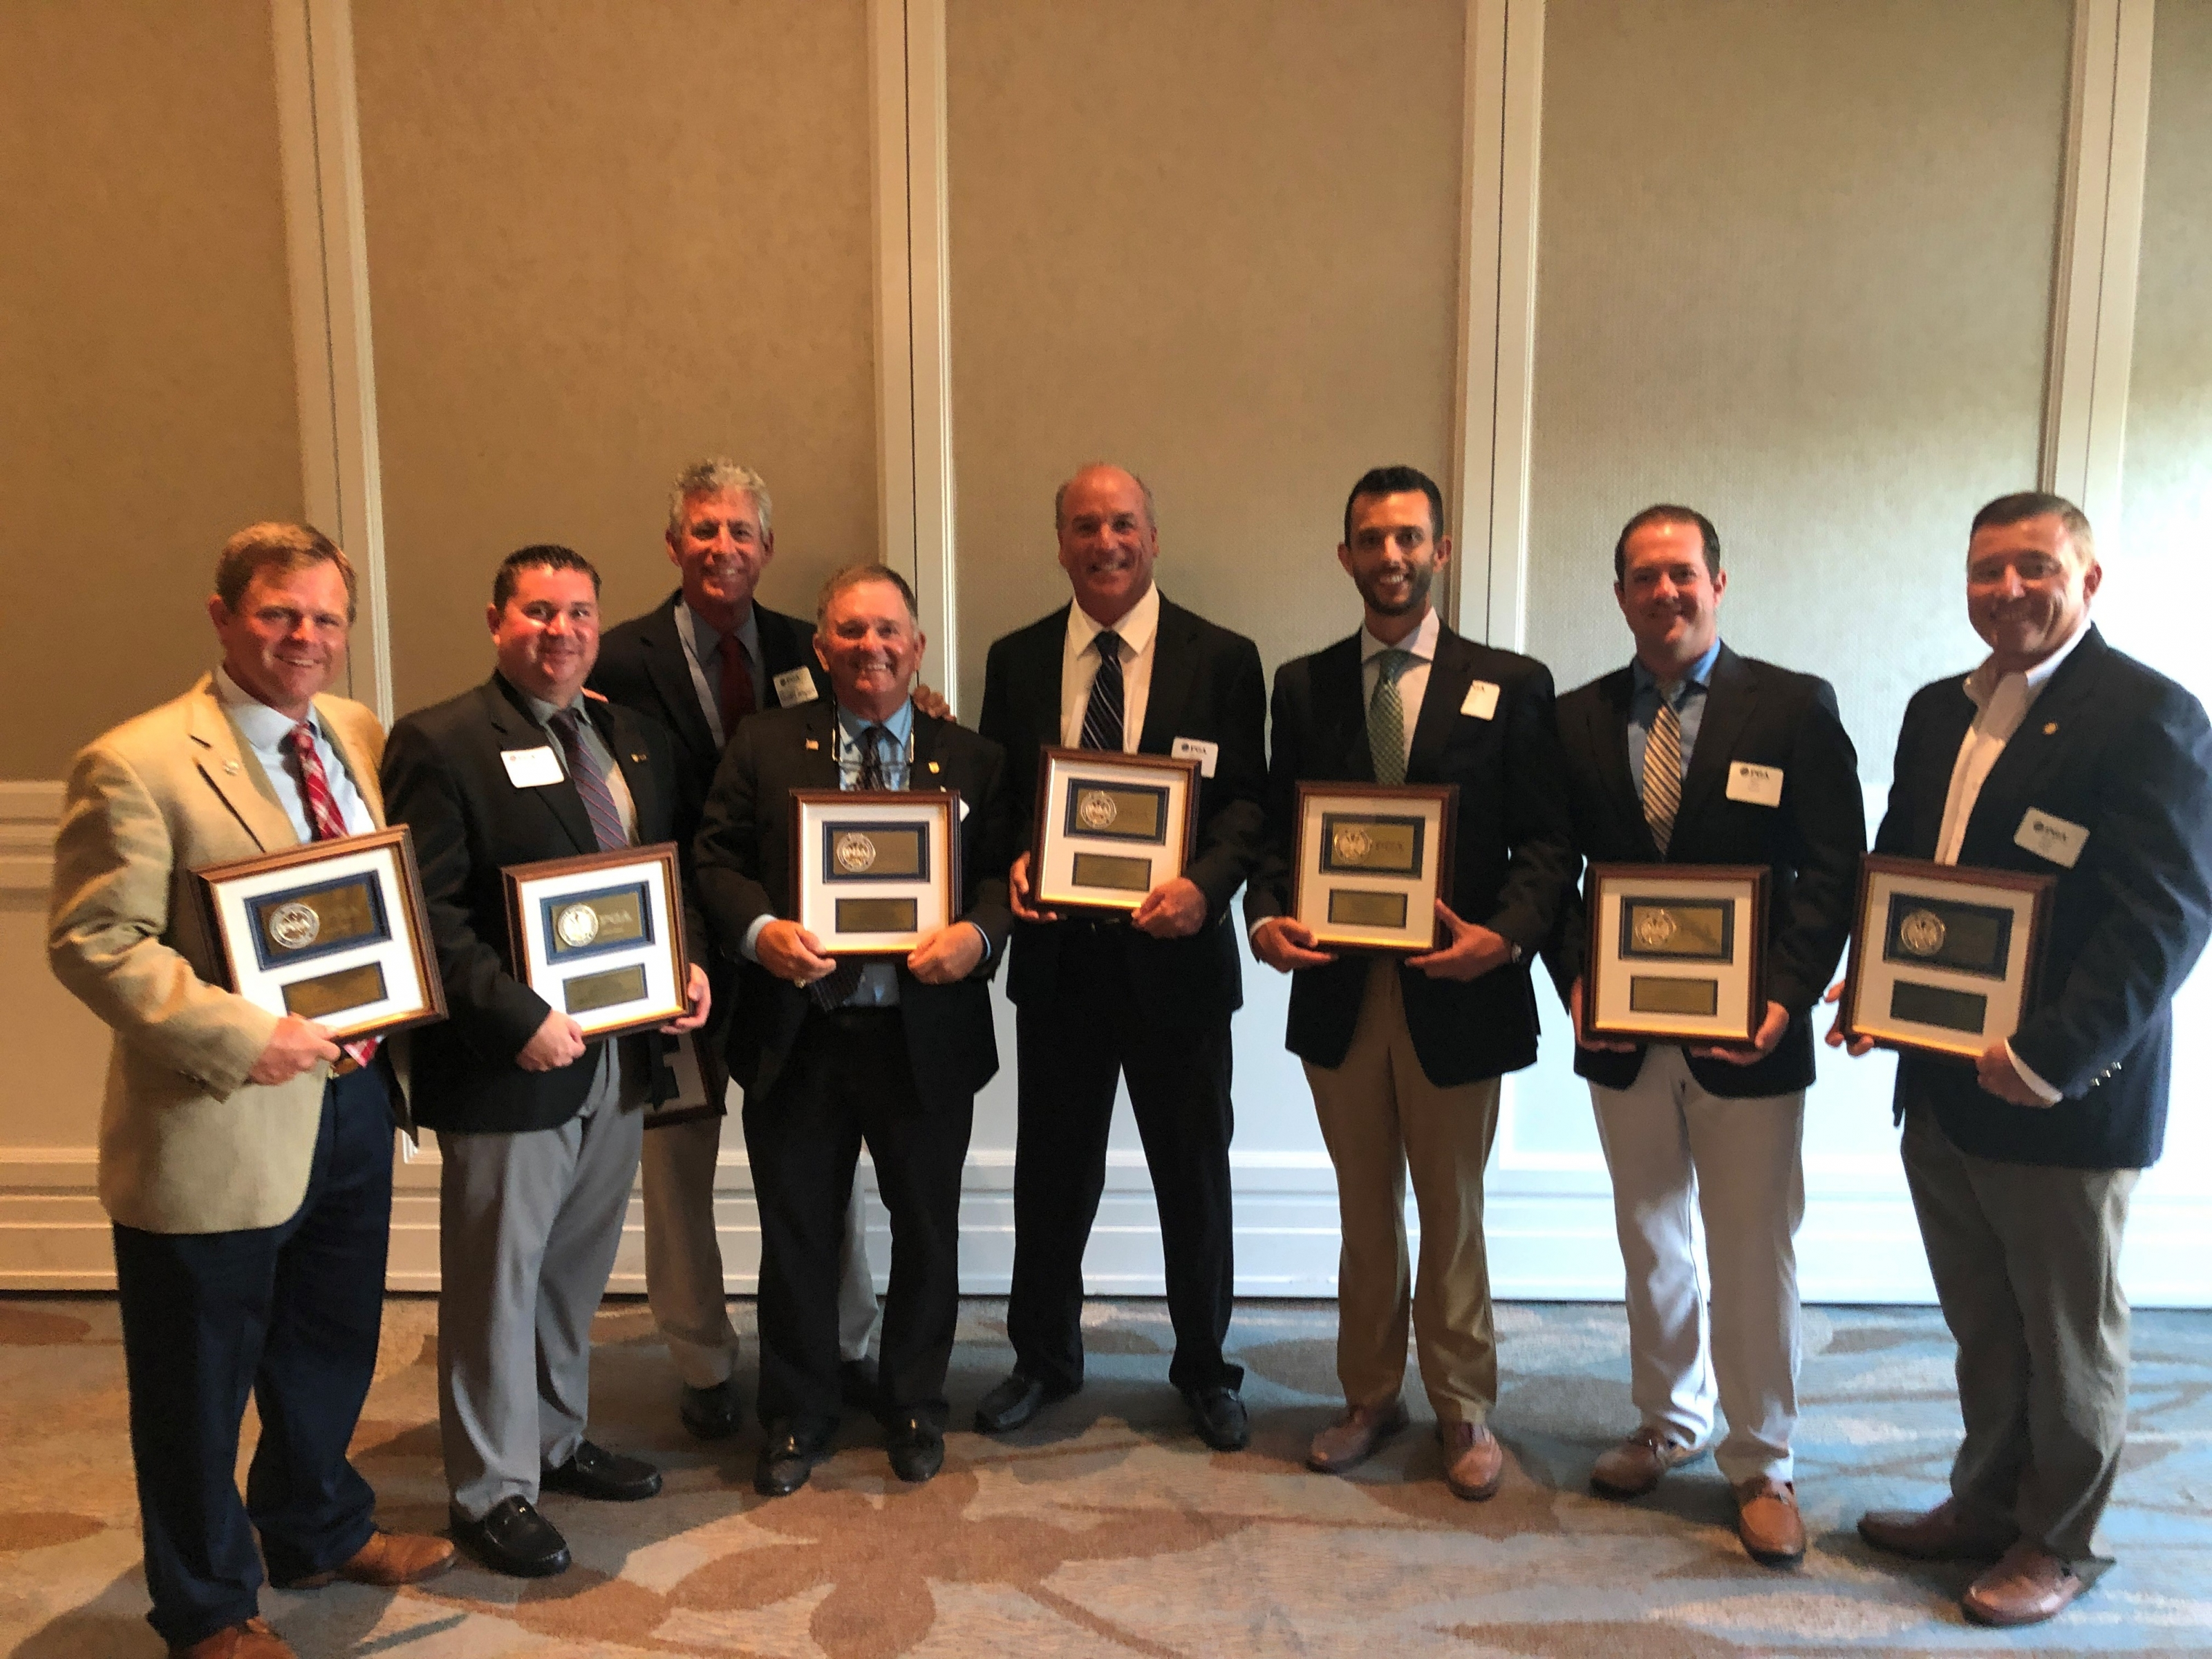 Southeast Chapter 2018 Annual Award Winners